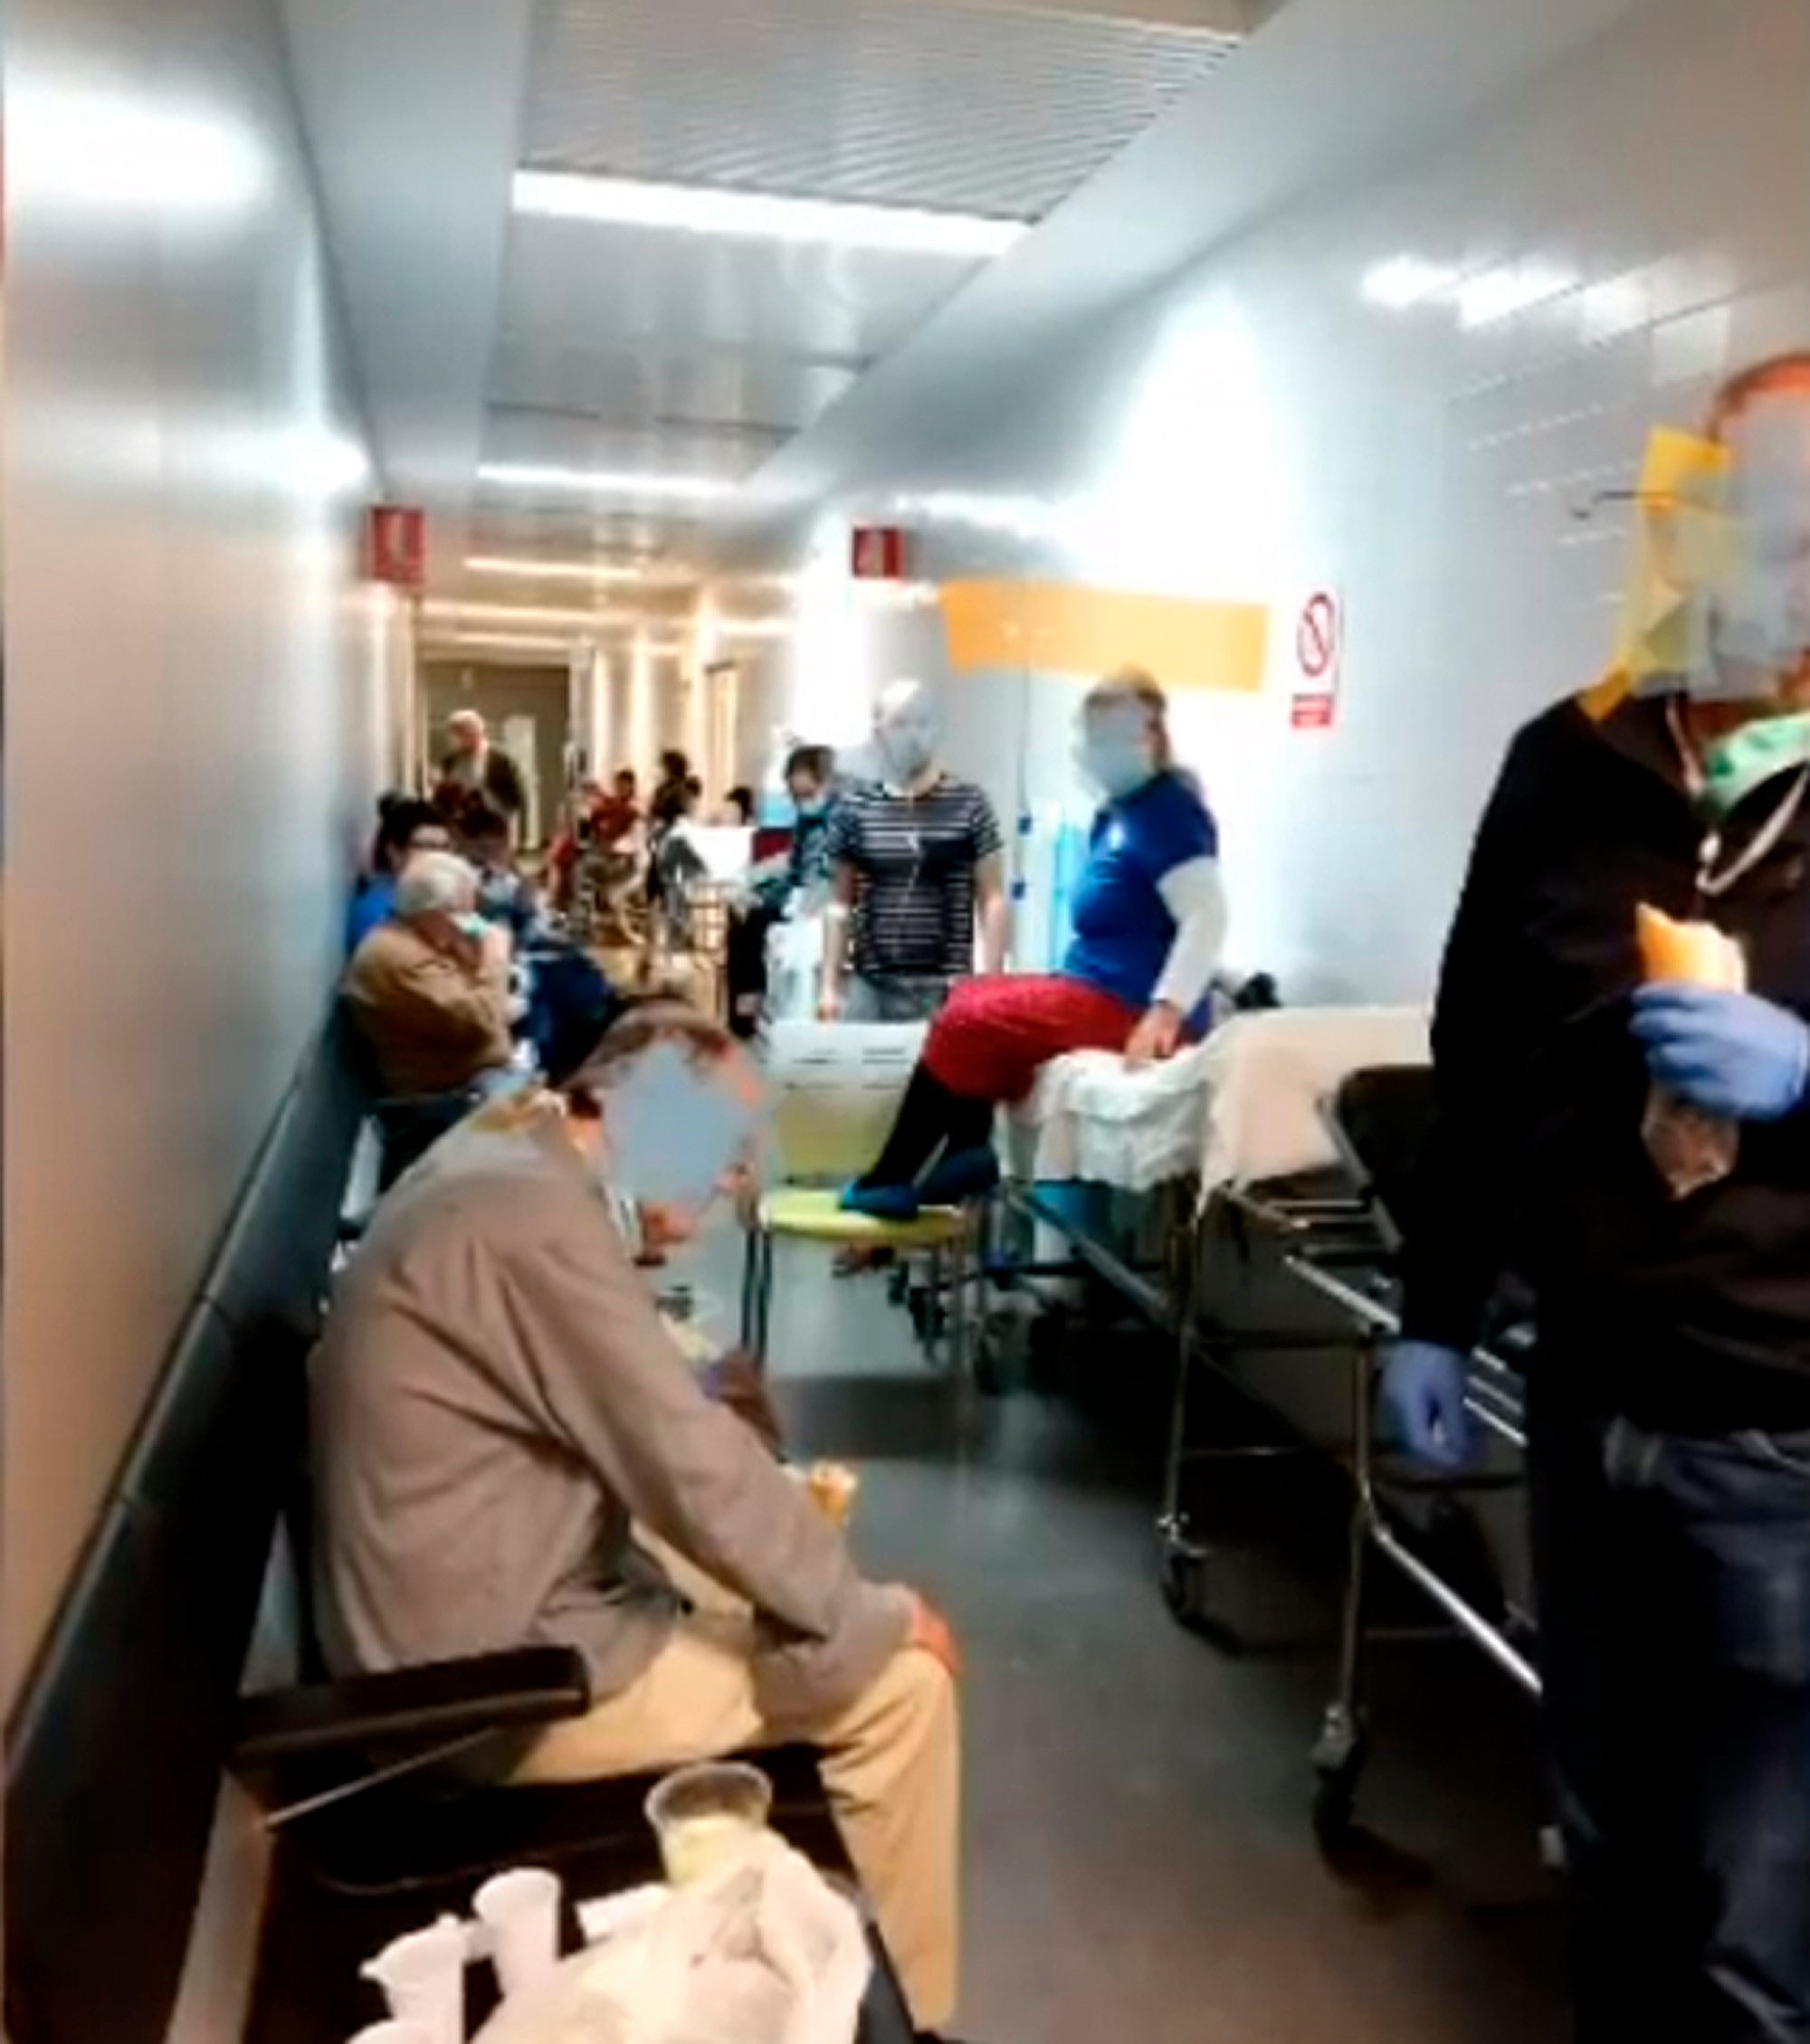 Patients in the corridor of the hospital of Albacete. It has been reported that there is a three day wait for a bed in the country